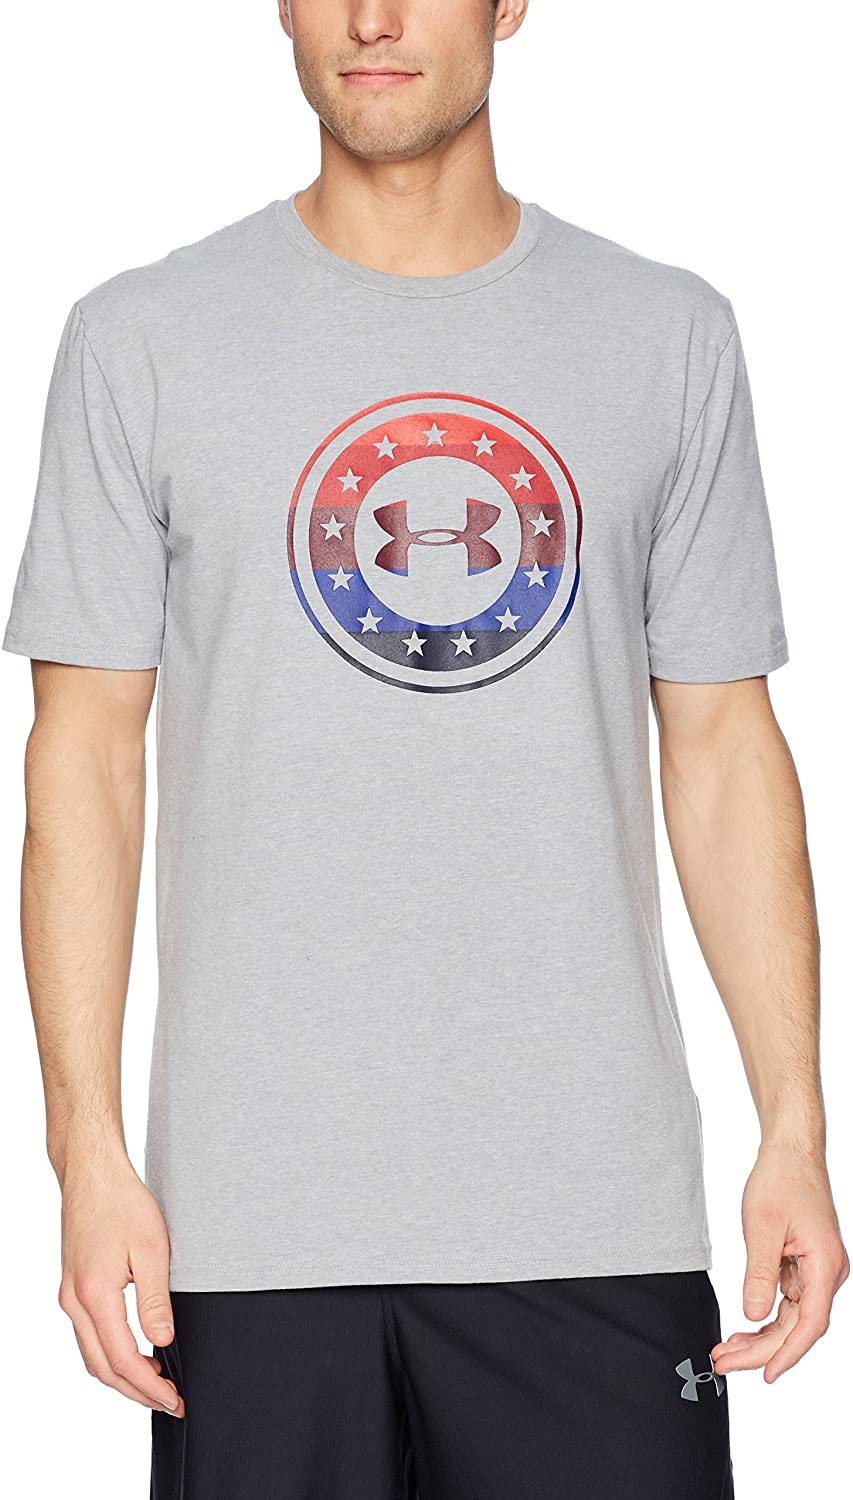 Under Armour Men's Freedom Circle t-Shirt t